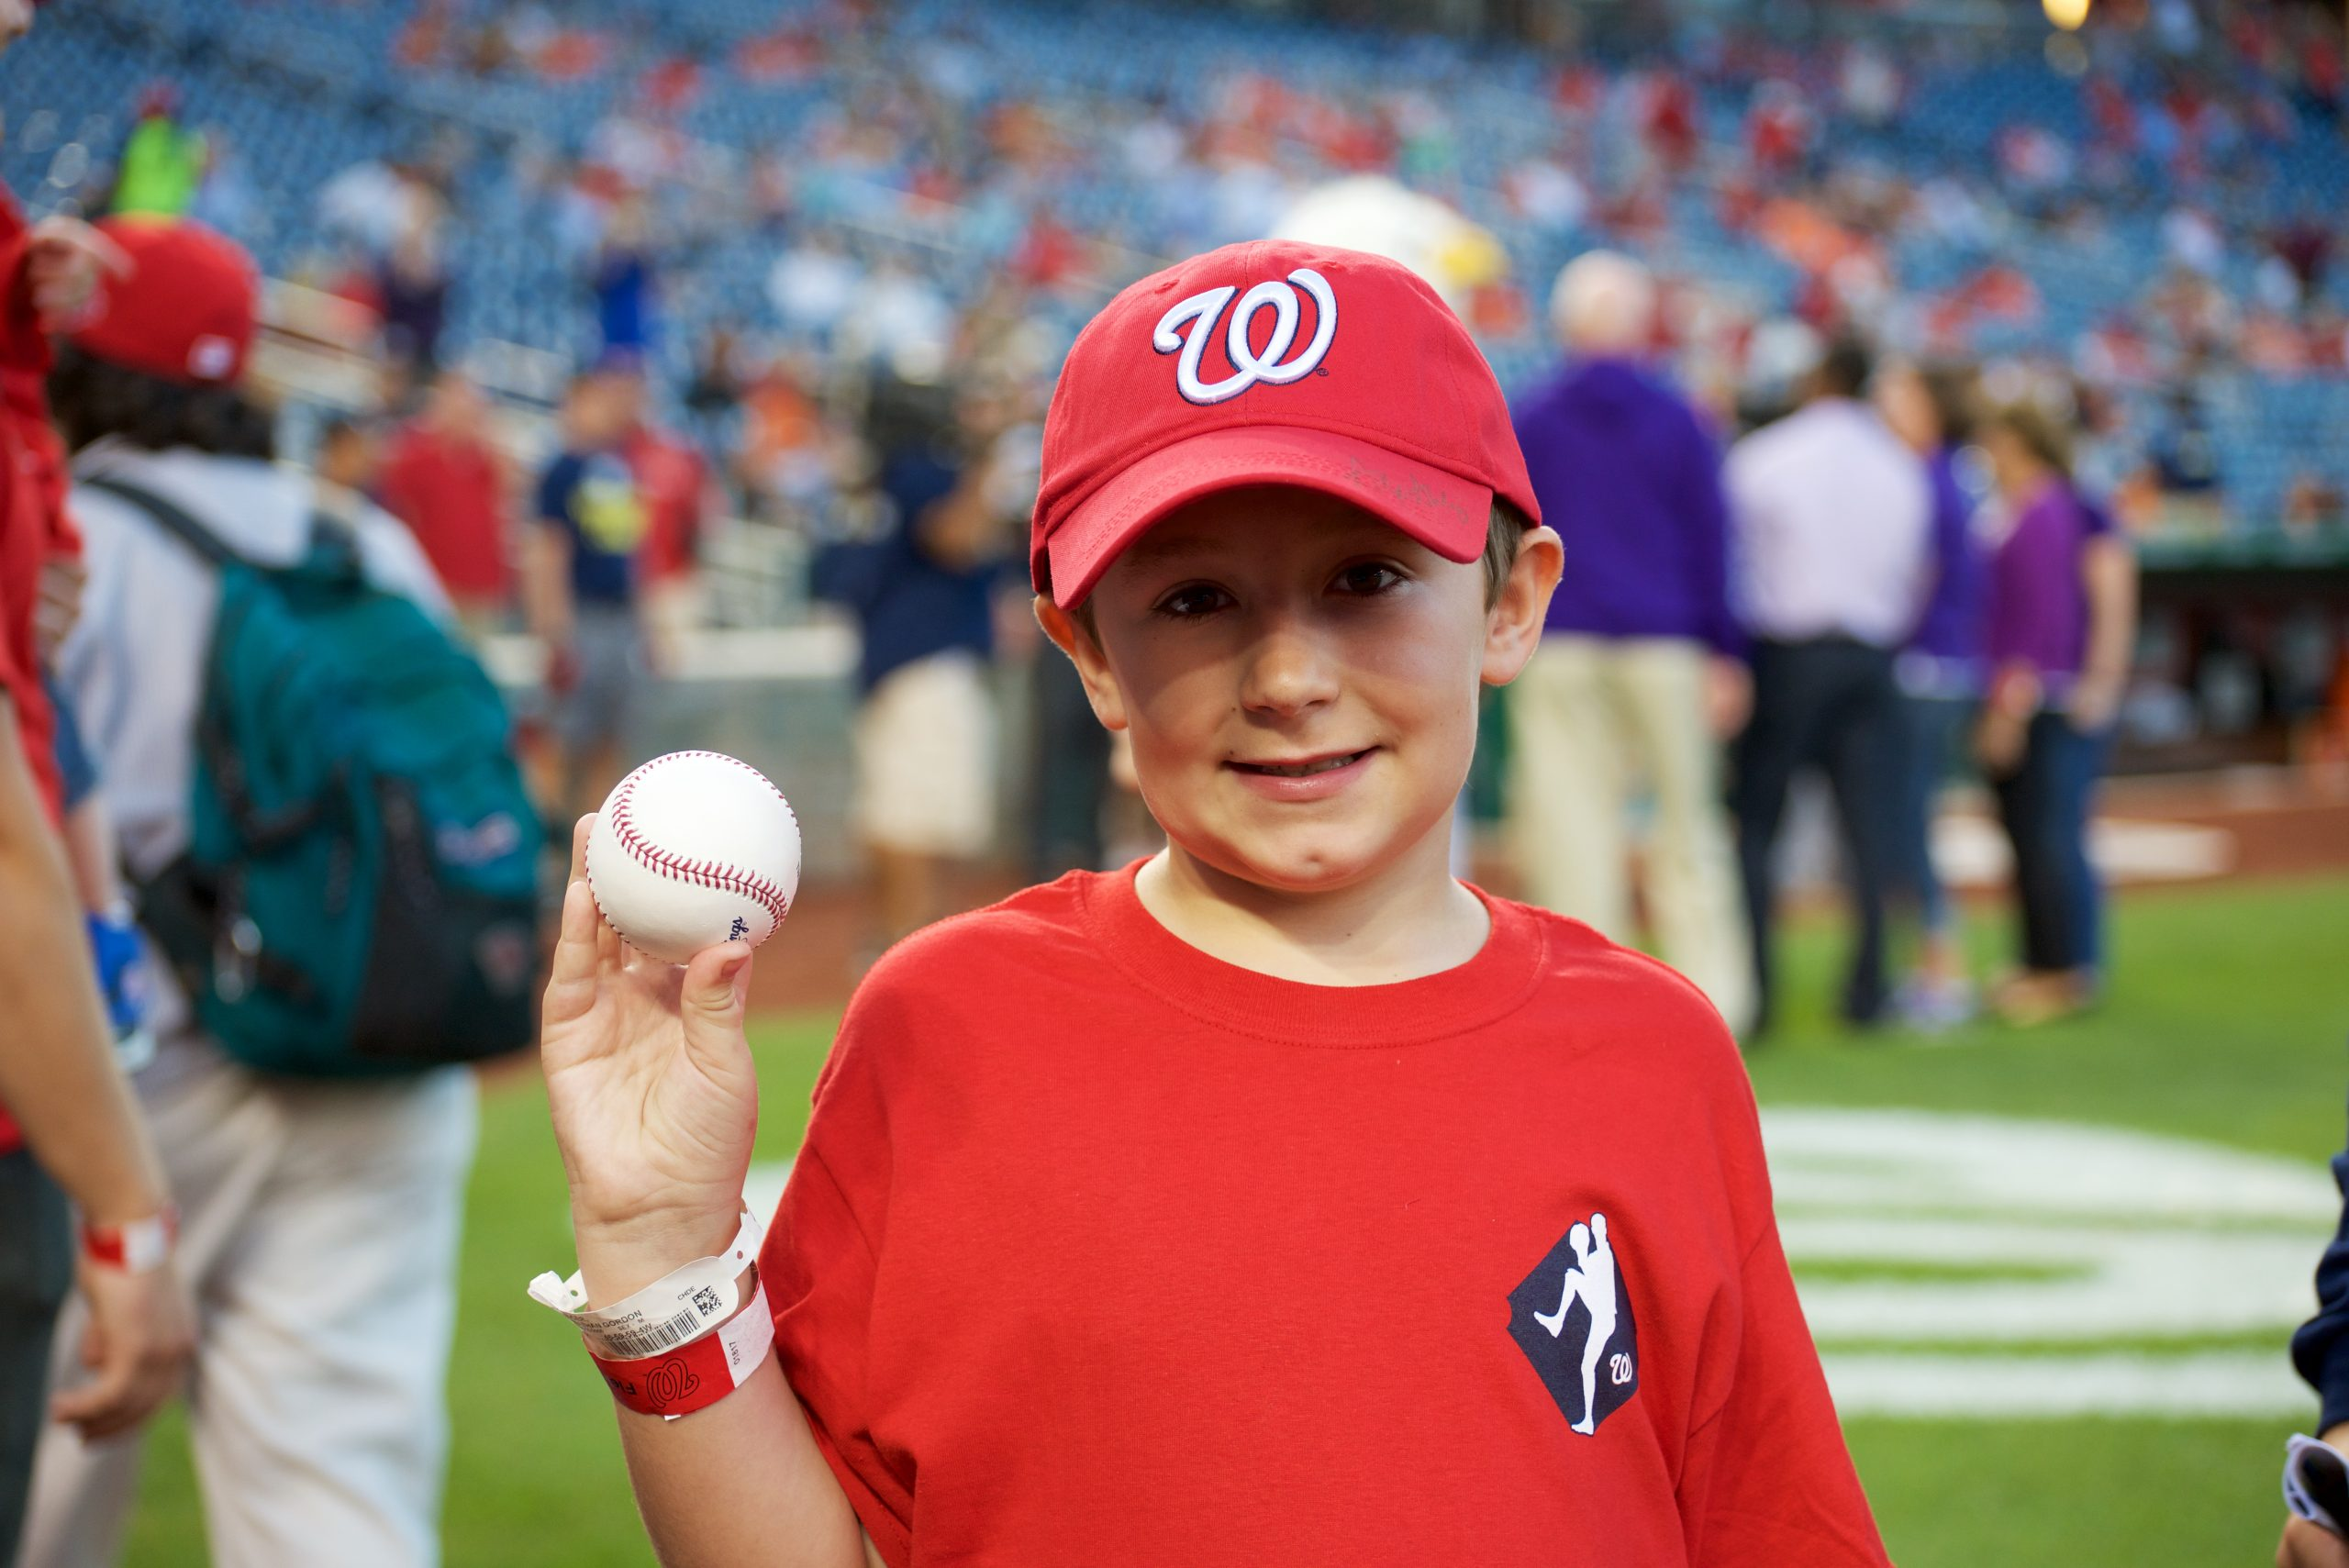 Young boy Jonathan Spencer at Nationals Game